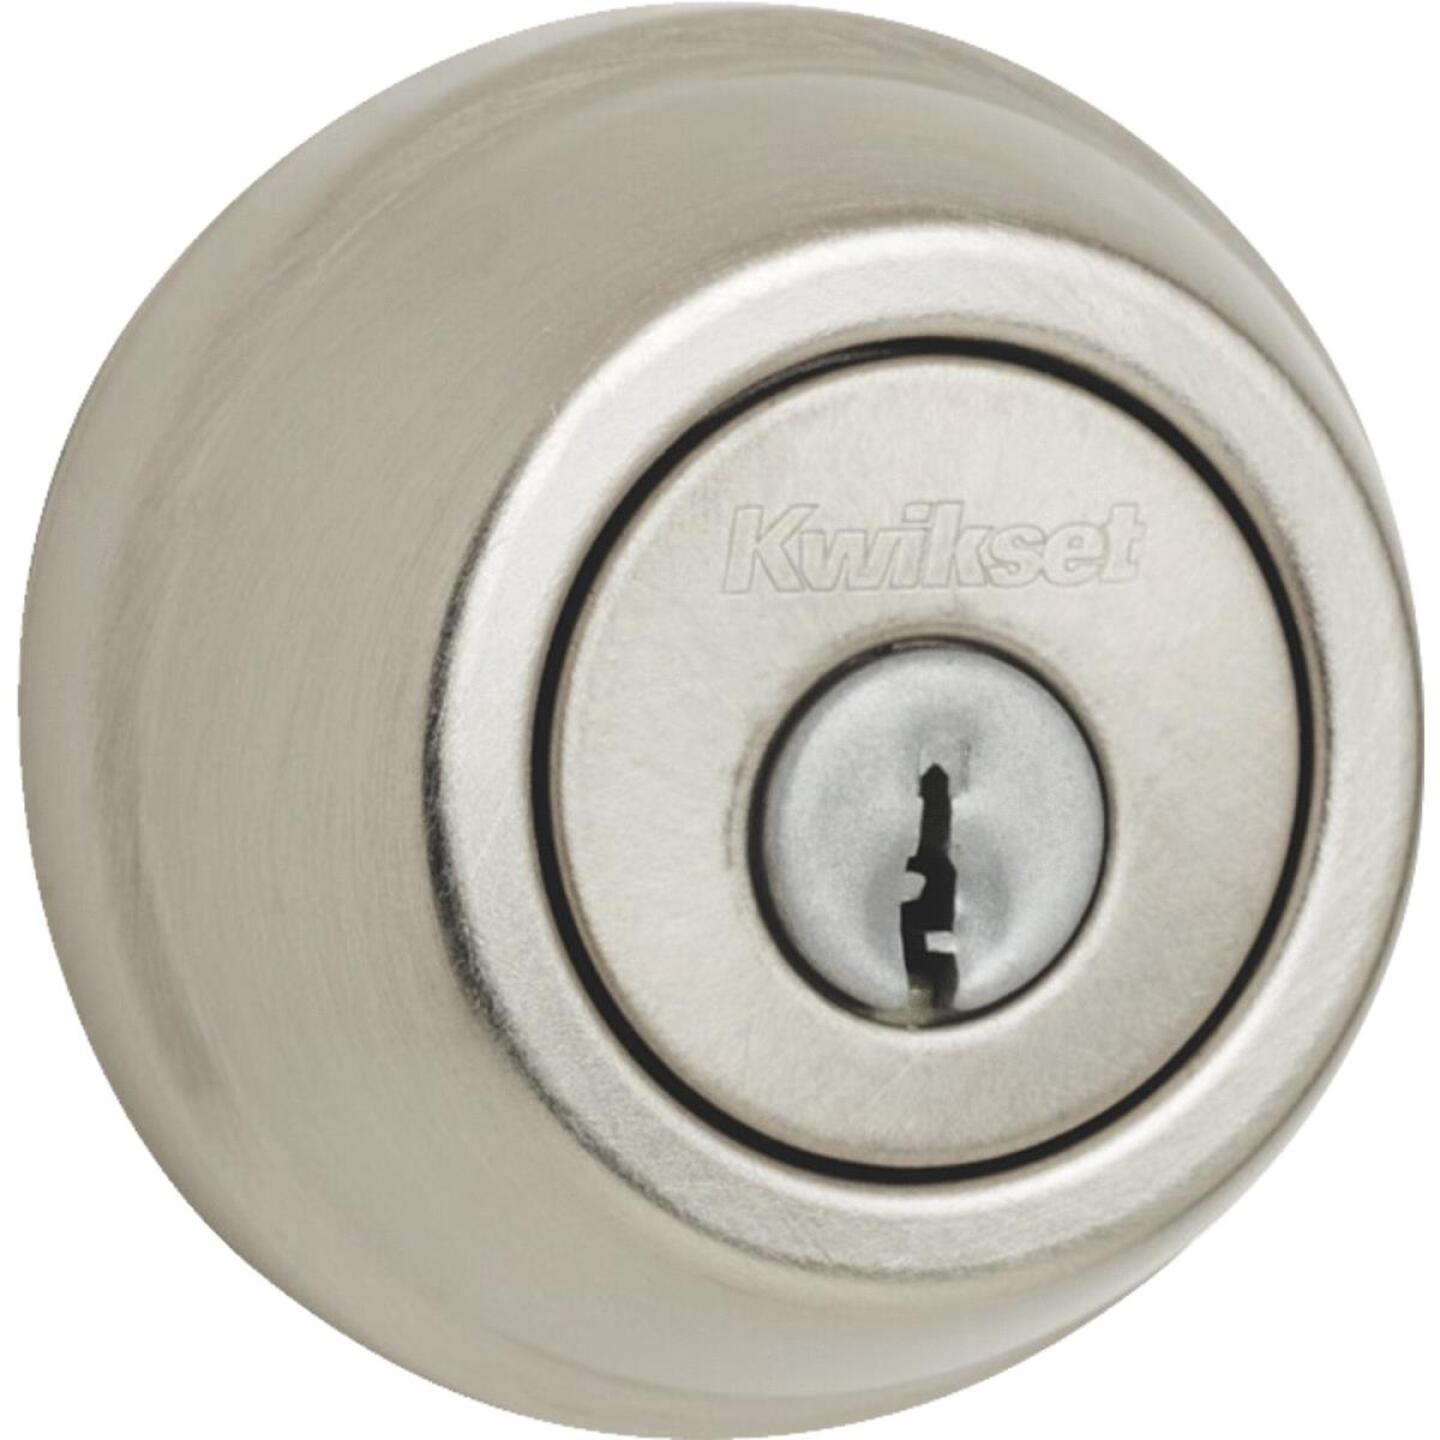 Kwikset Satin Nickel Adjustable Latch Double Cylinder Deadbolt Image 1